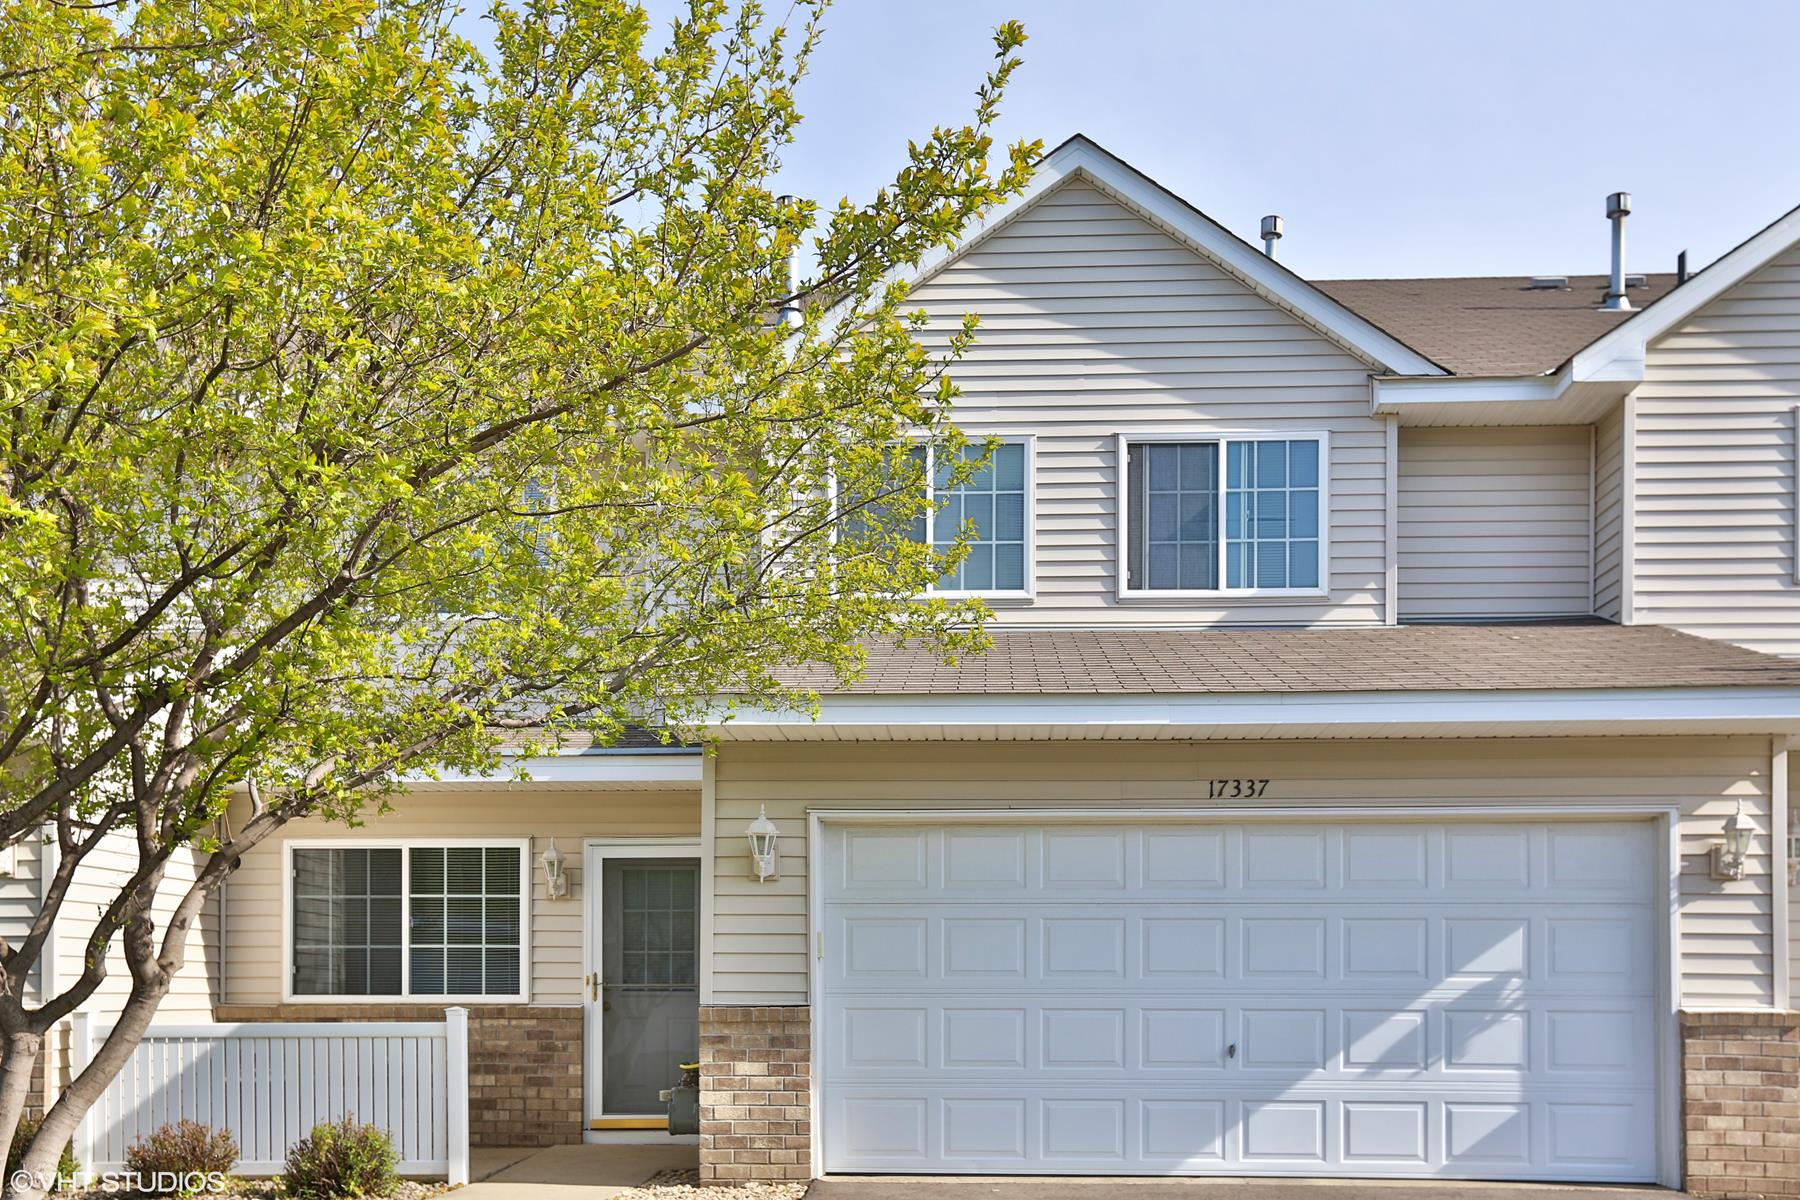 Townhouse for Sale at 17337 River Birch Lane Prior Lake, Minnesota, 55372 United States